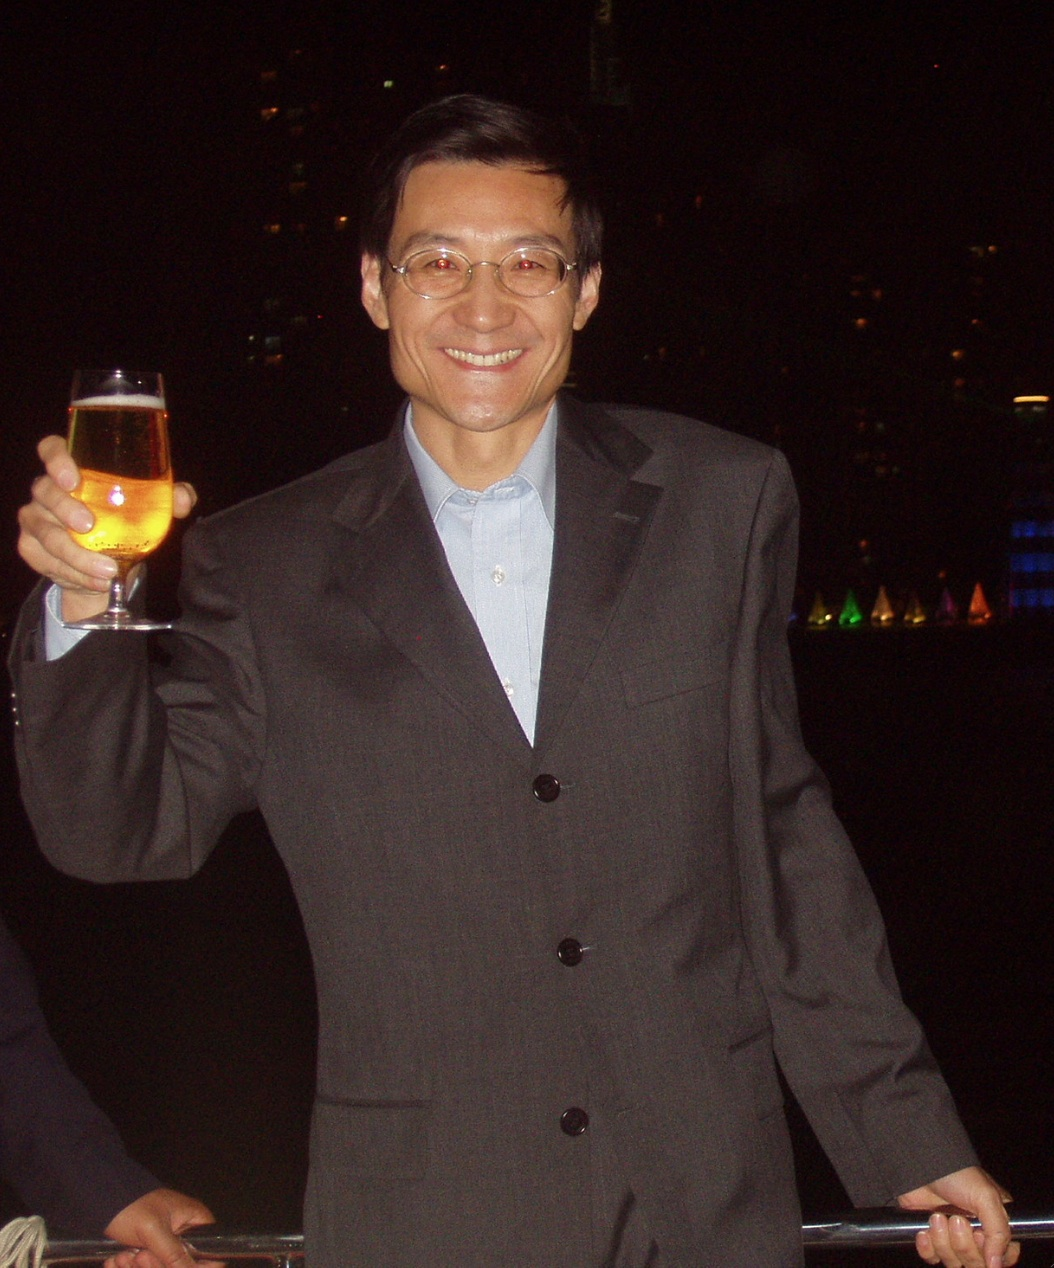 and thank you, Xing Lan for a few great exhibitions and conferences...Cheers!